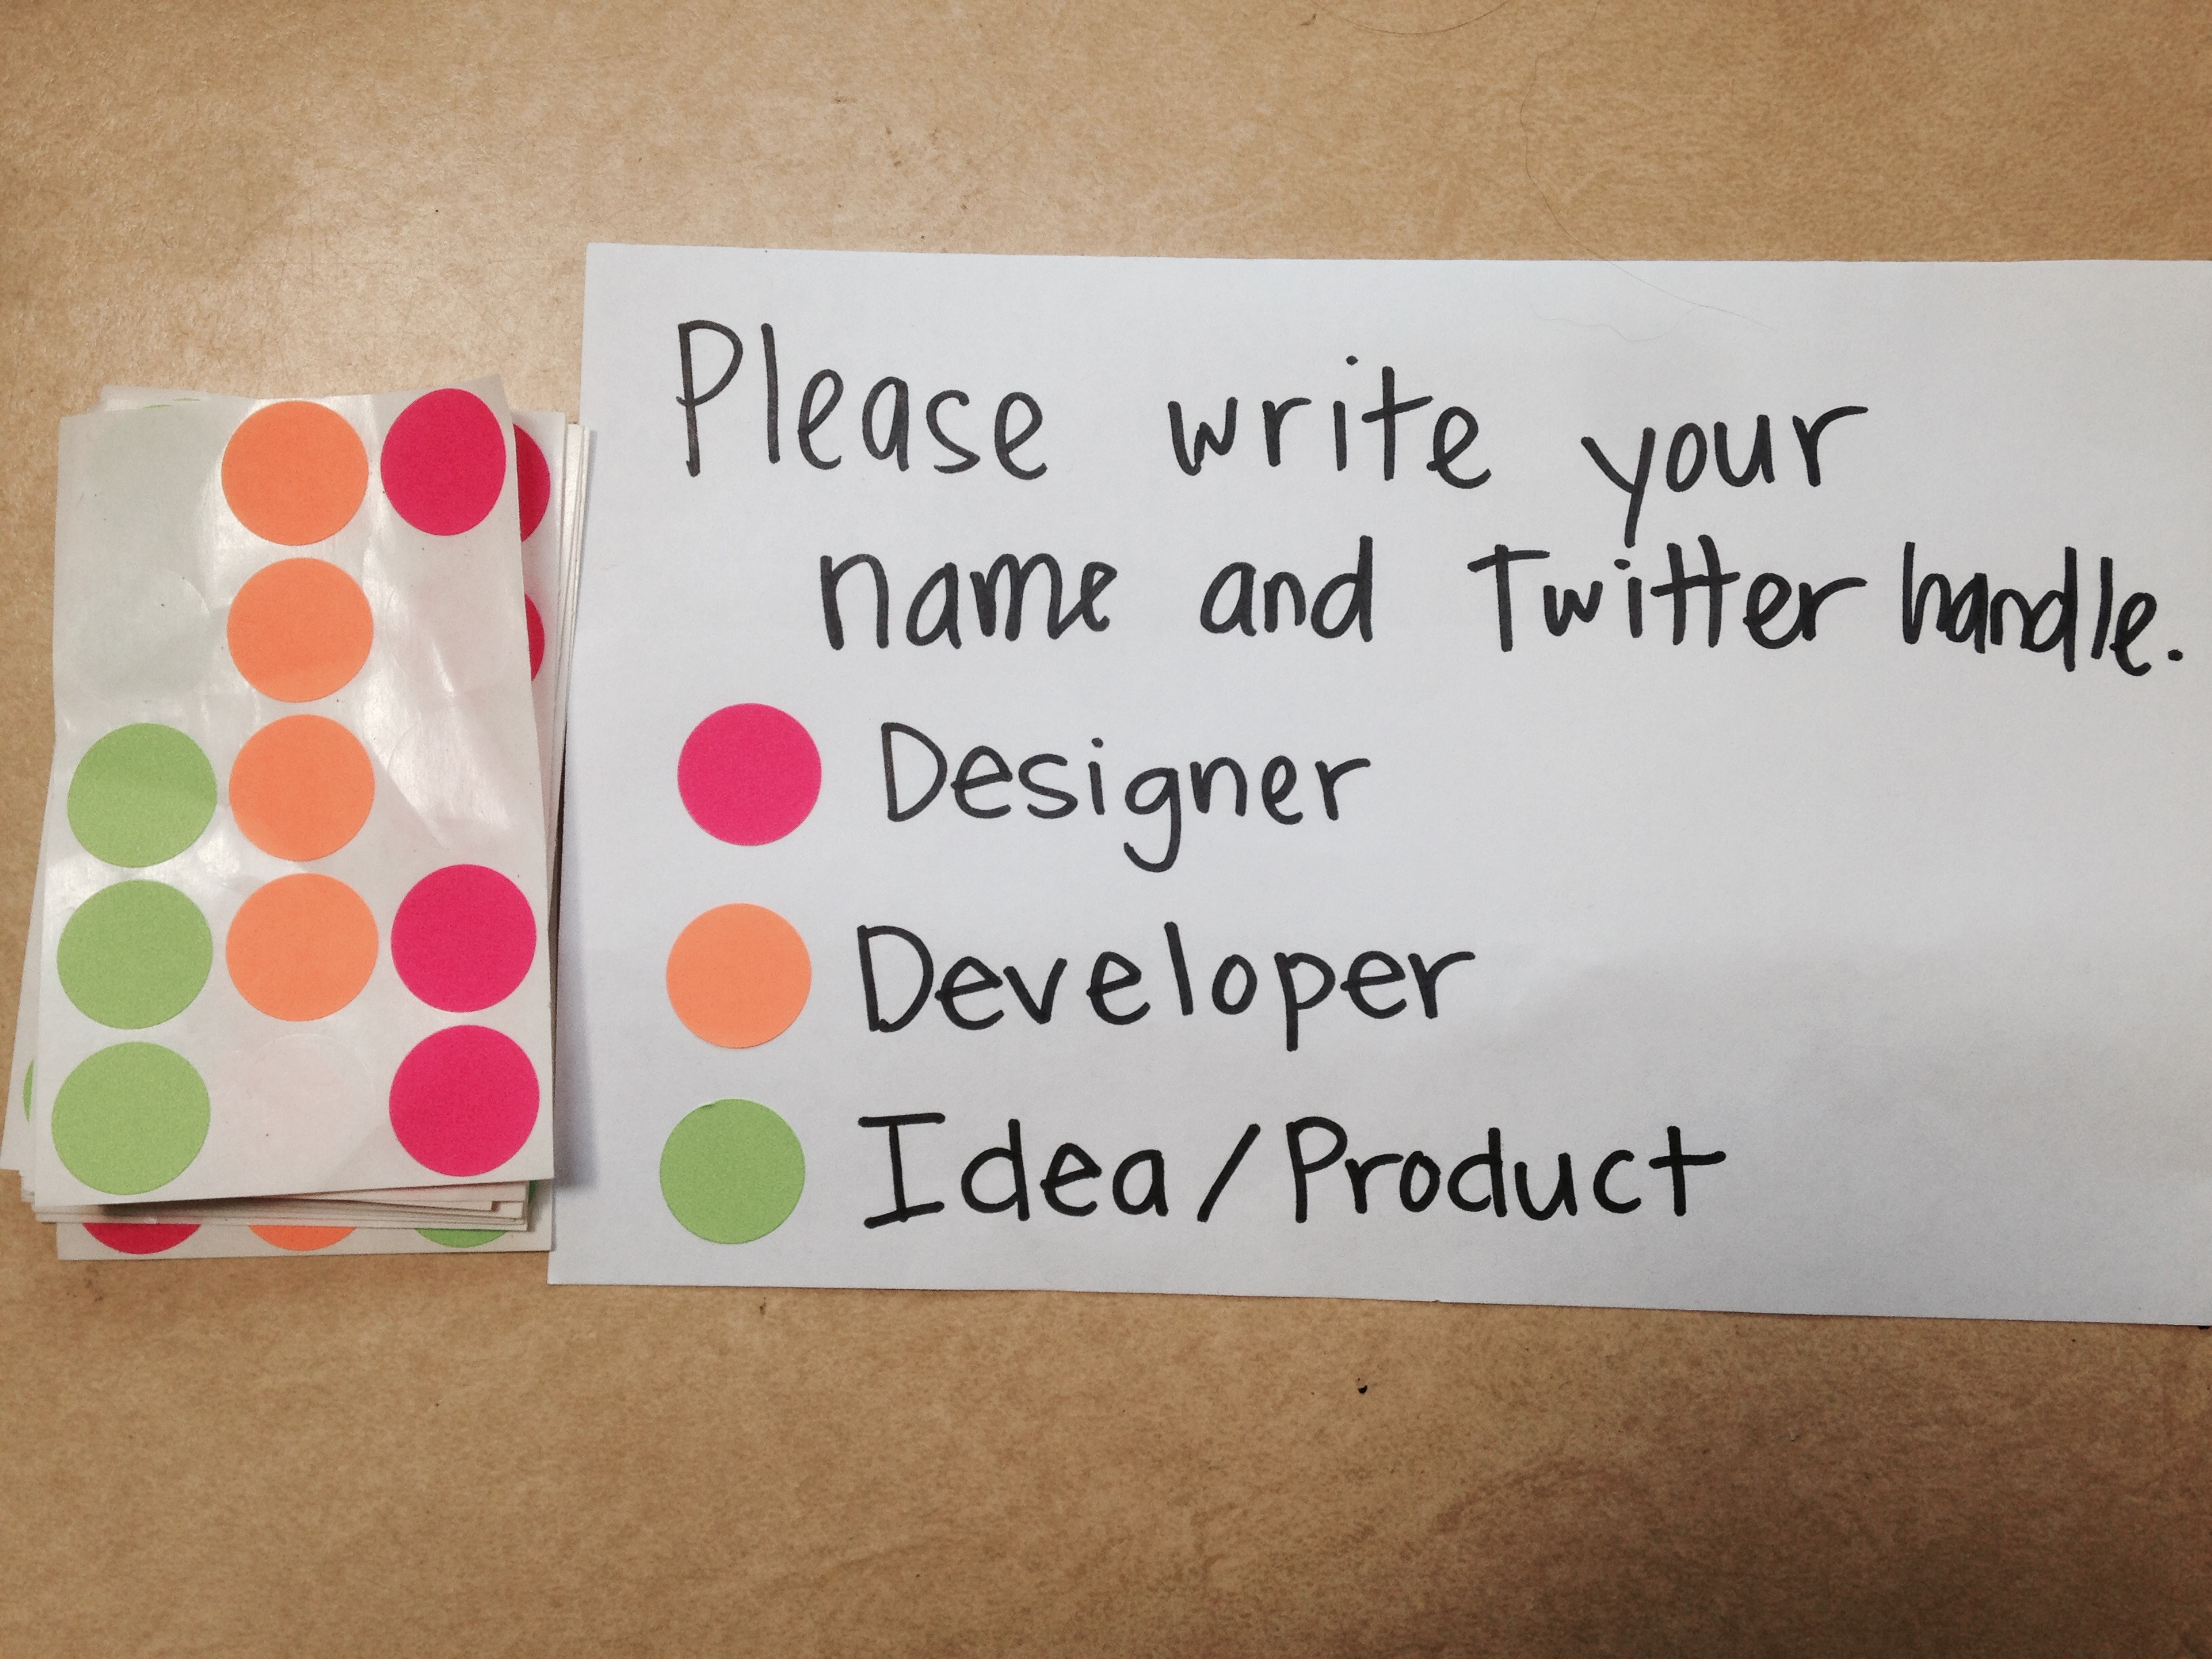 Image: nametag from recent hackathon showing color-coded stickers for devs, designers, and content strategists